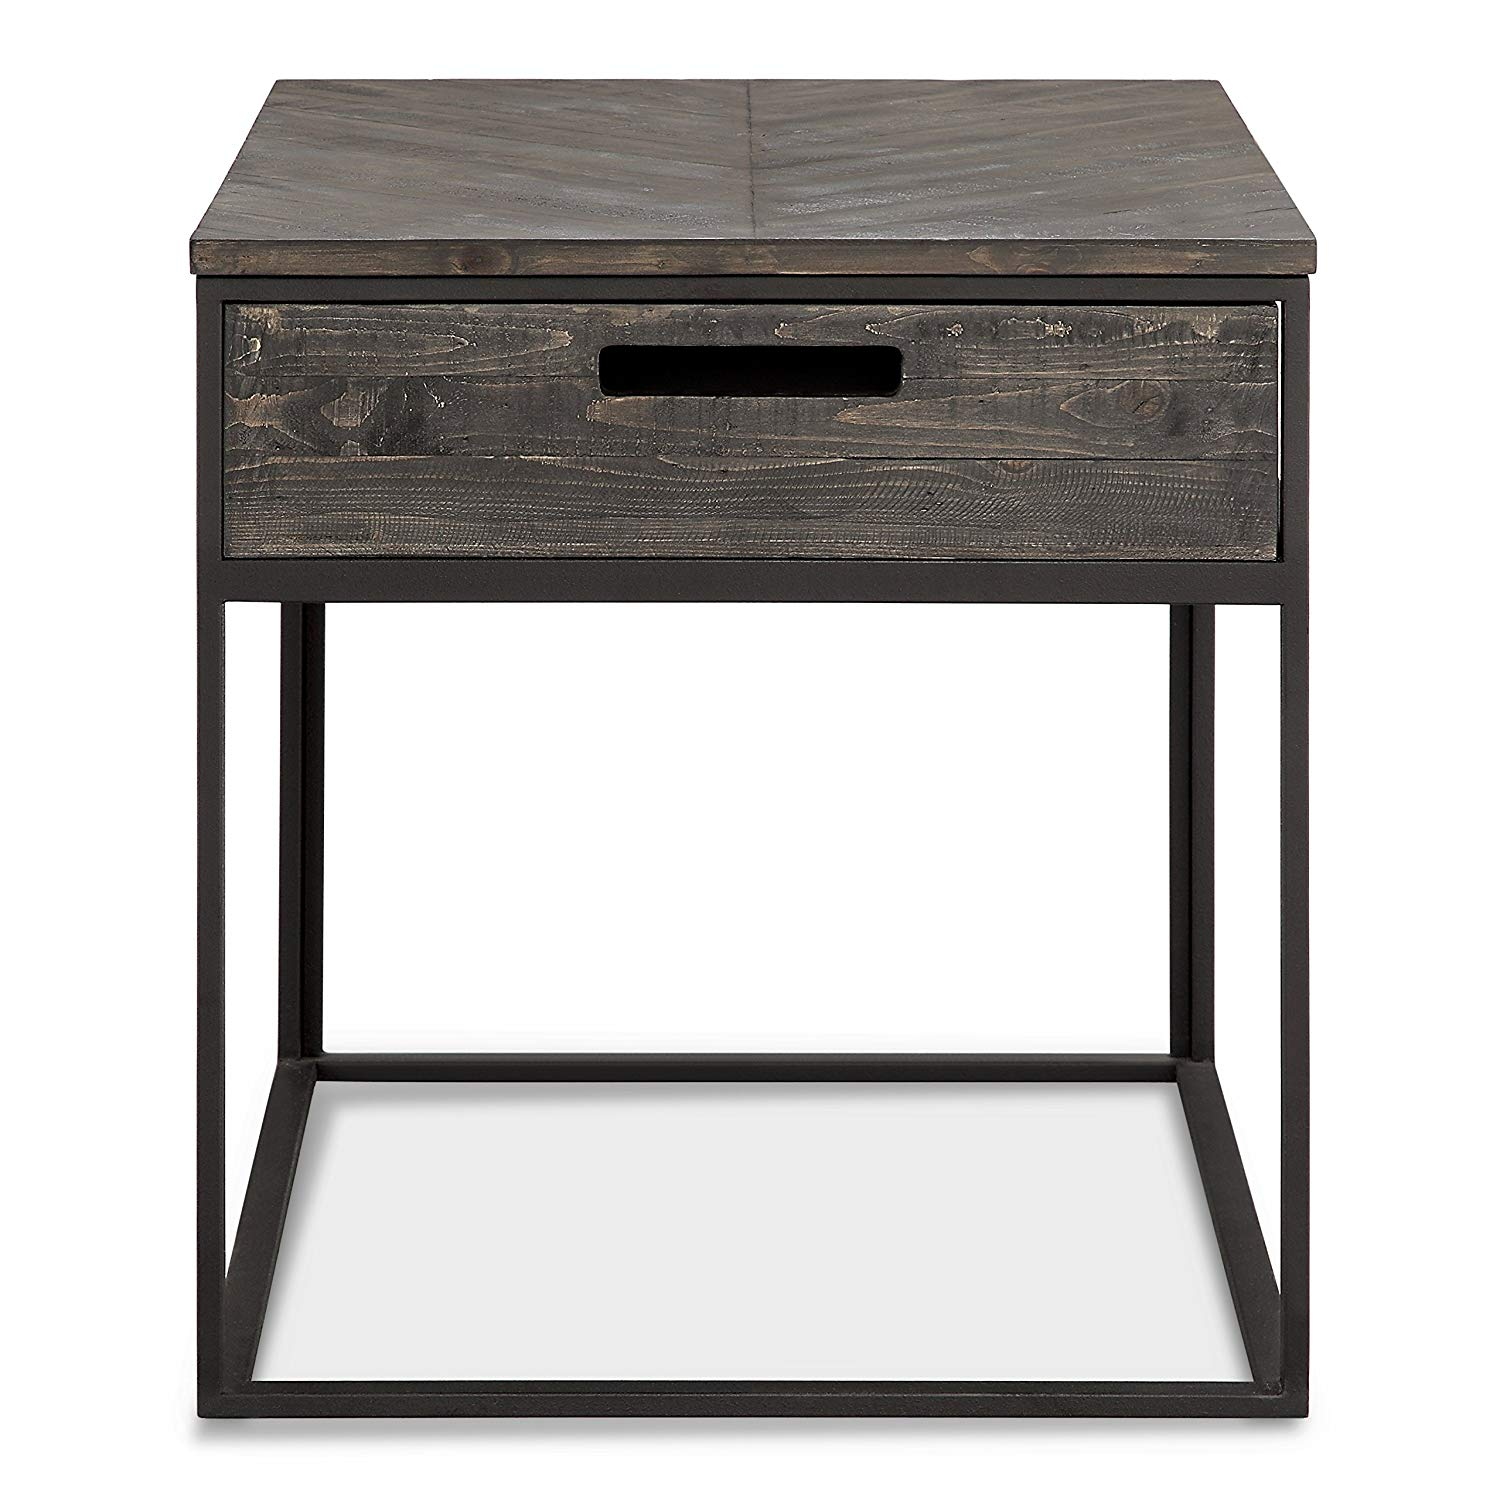 magnussen claremont transitional furniture end tables weathered charcoal rectangular table kitchen dining thomasville headquarters are glass tops tempered unfinished entertainment